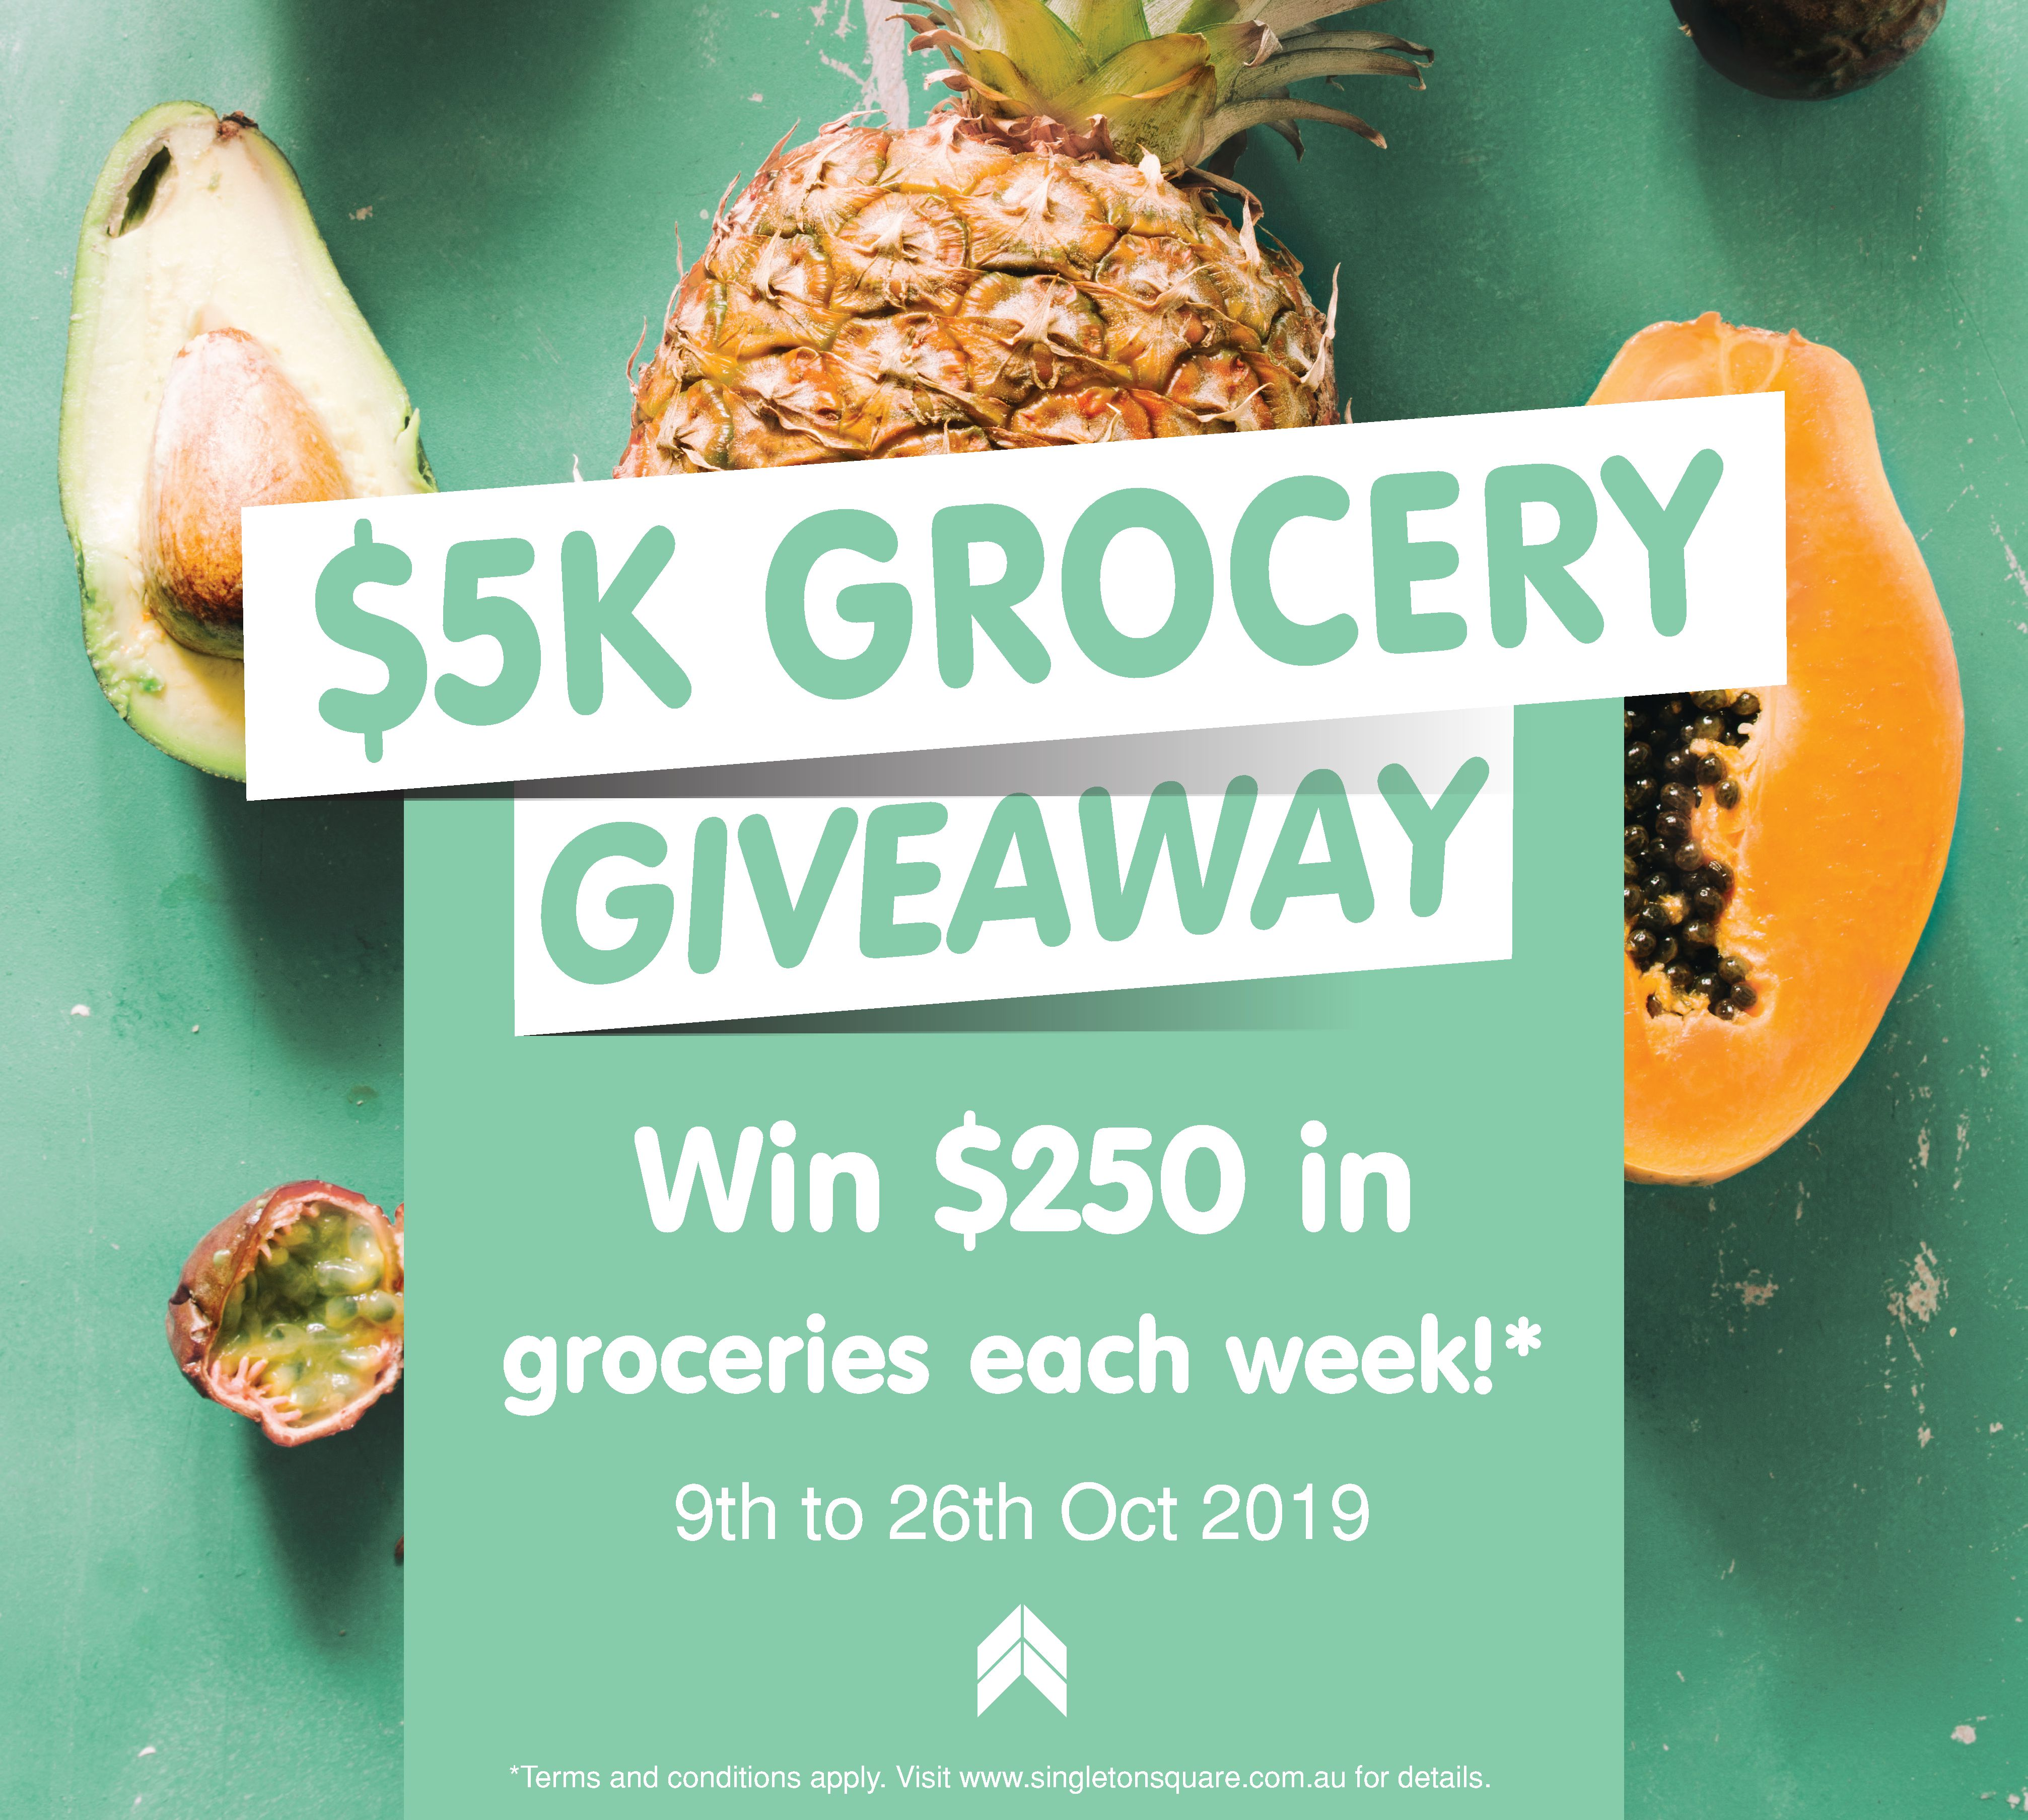 SS_grocerygiveaway_682x612